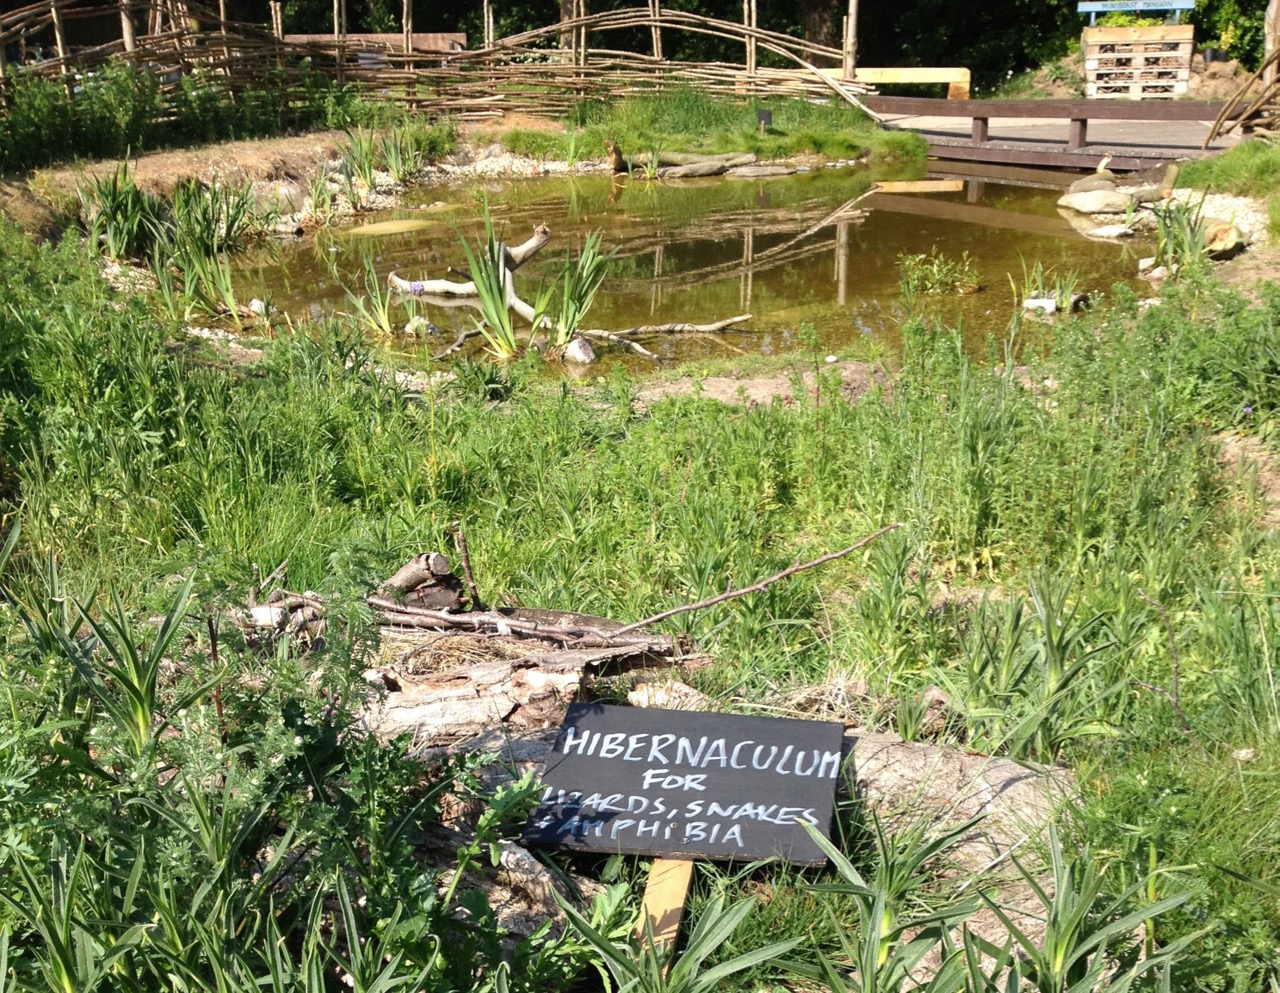 Sign for the hibernaculum at the 'back' of the pond.